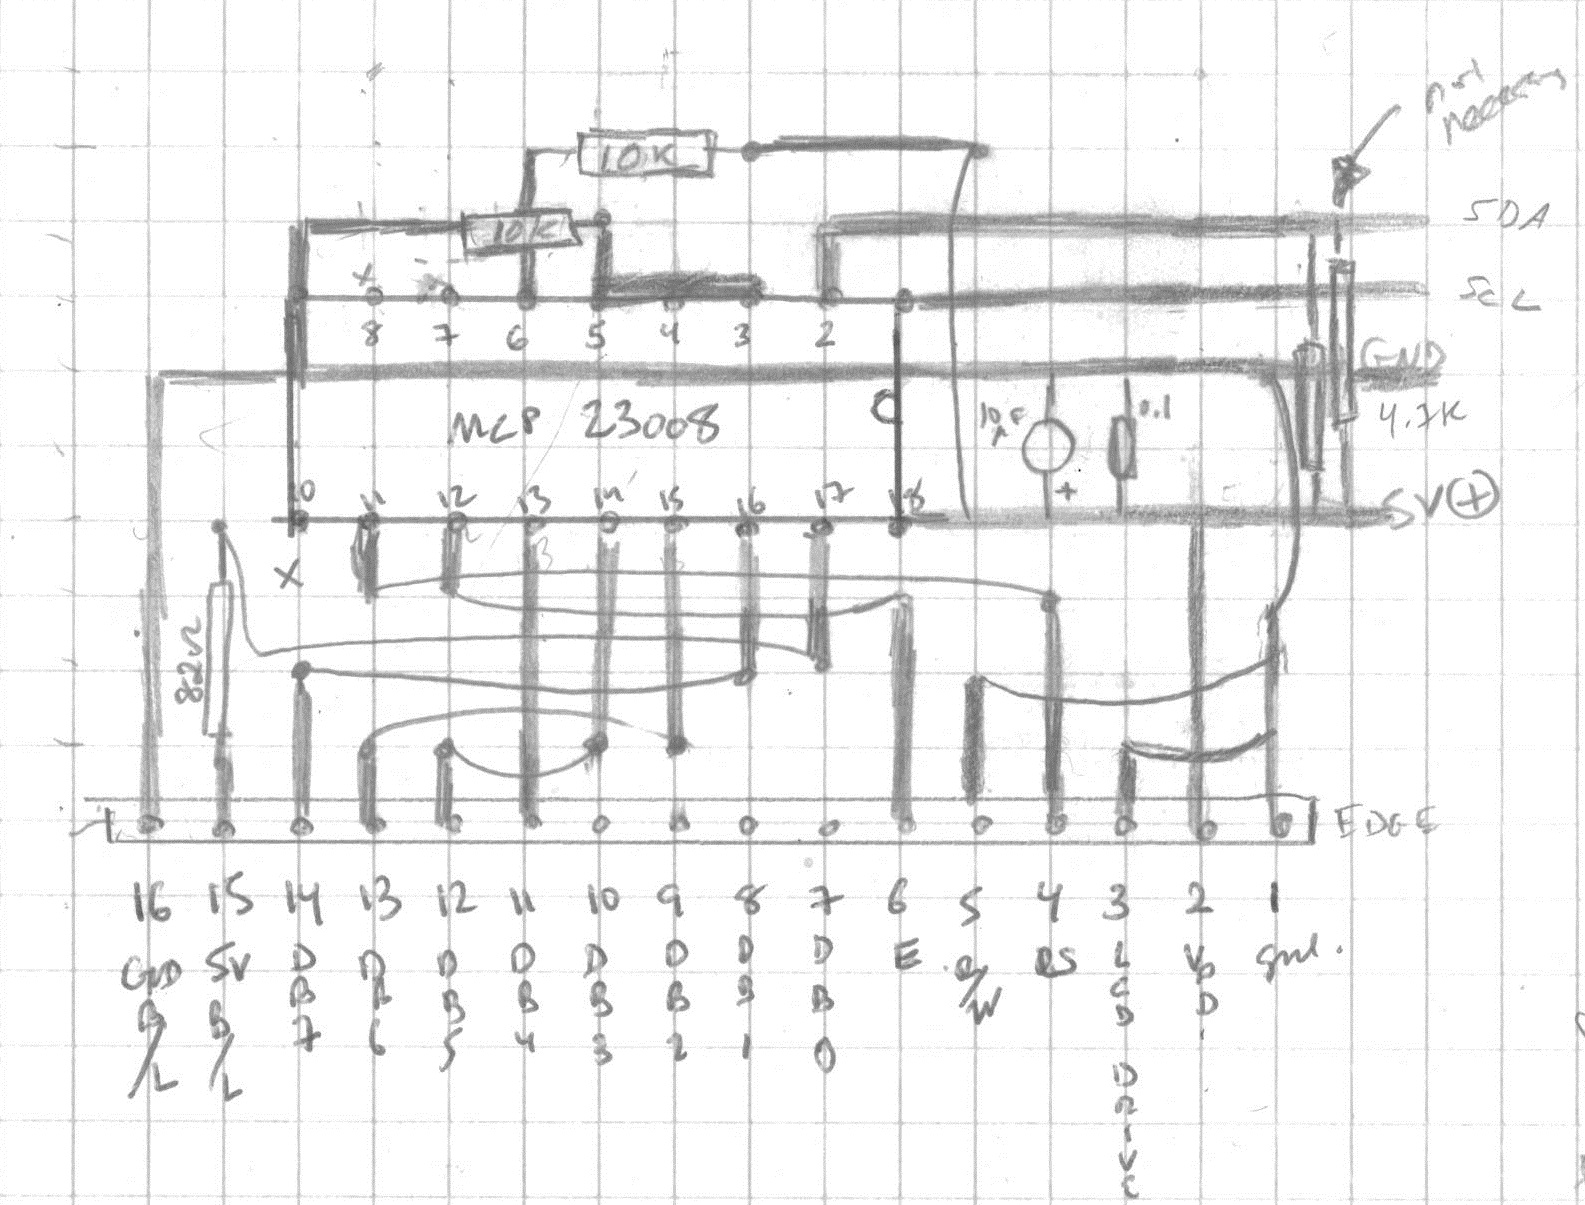 Vfo In A Box Dhakajack Radio Circuits Blog Hf Push Pull Broad Band Amplifier Circuit Pencil Drawing Of Trace Routing For The Backpack And Lcd Display